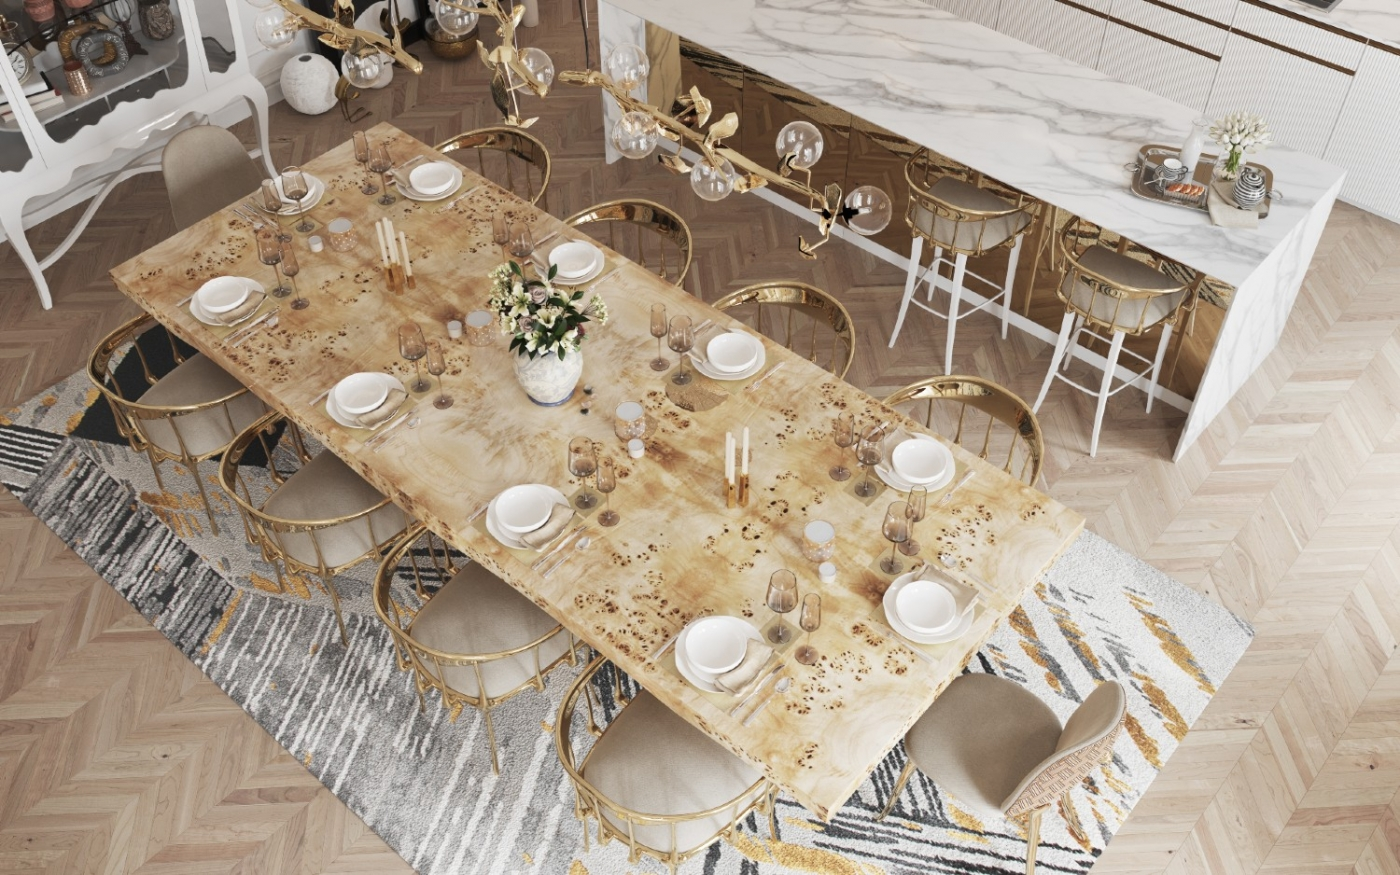 Revamp Your Modern Dining Room With These Design Ideas! ft modern dining room Revamp Your Modern Dining Room With These Design Ideas! Revamp Your Modern Dining Room With These Design Ideas ft 1400x875